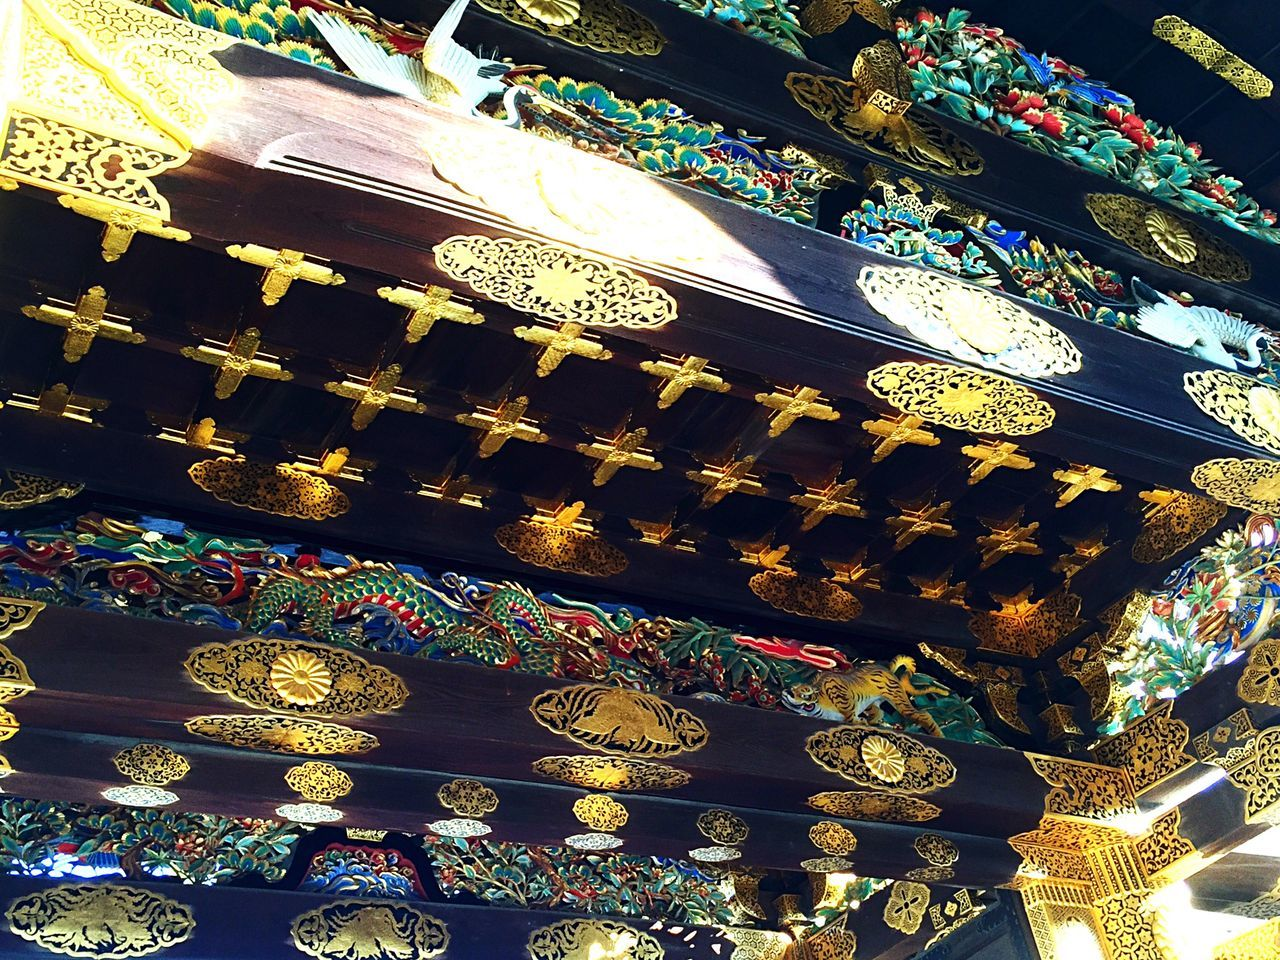 design, ornate, art and craft, low angle view, multi colored, religion, cultures, no people, pattern, spirituality, gold colored, indoors, place of worship, tradition, hanging, travel destinations, day, close-up, architecture